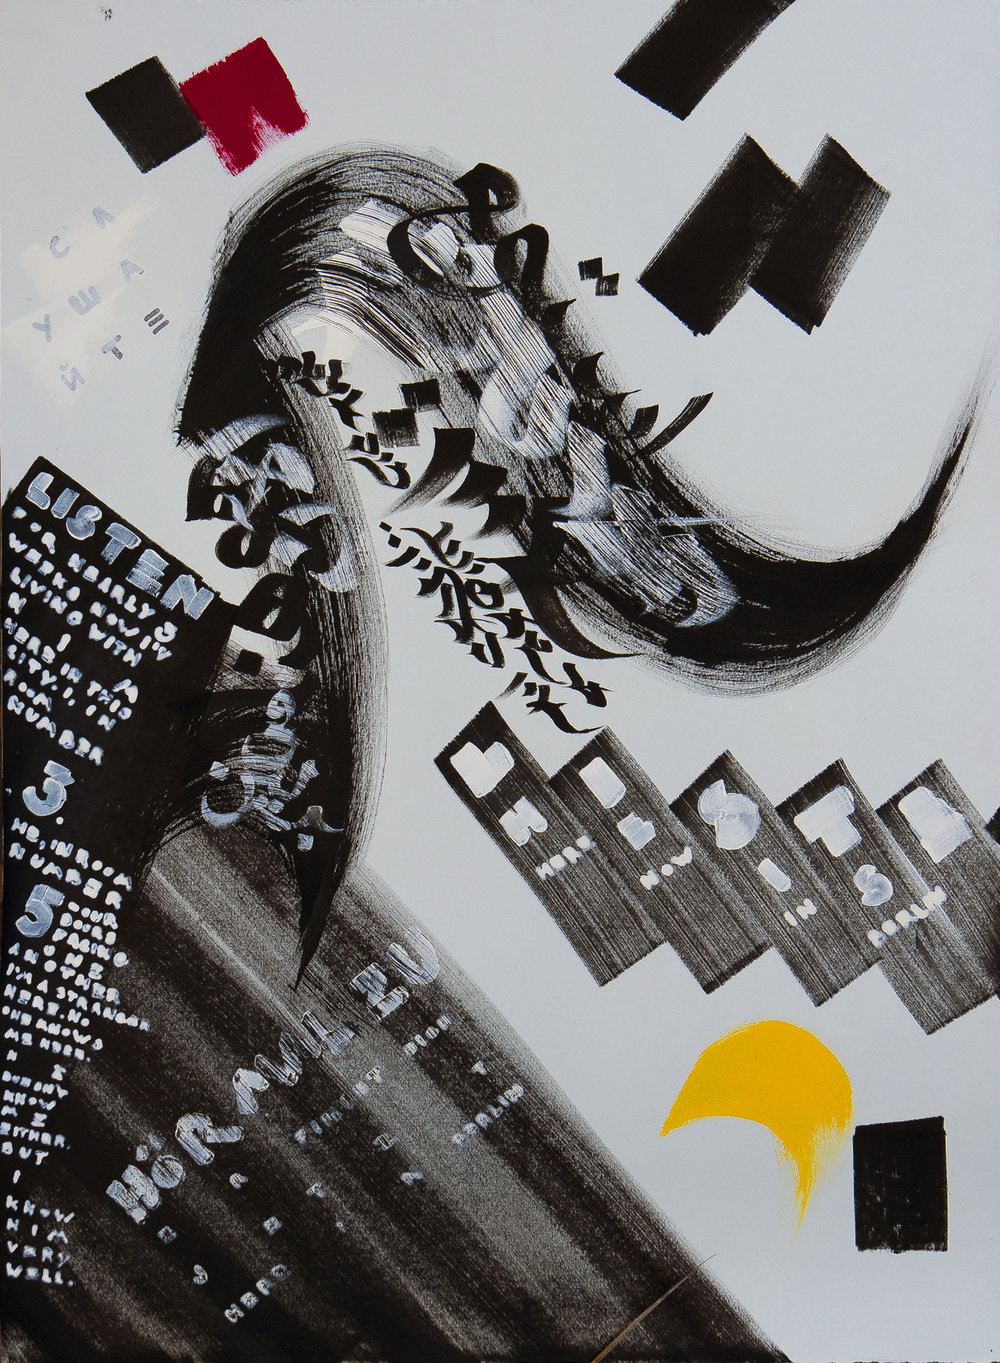 76x56 cm, ink and Acrylic on paper